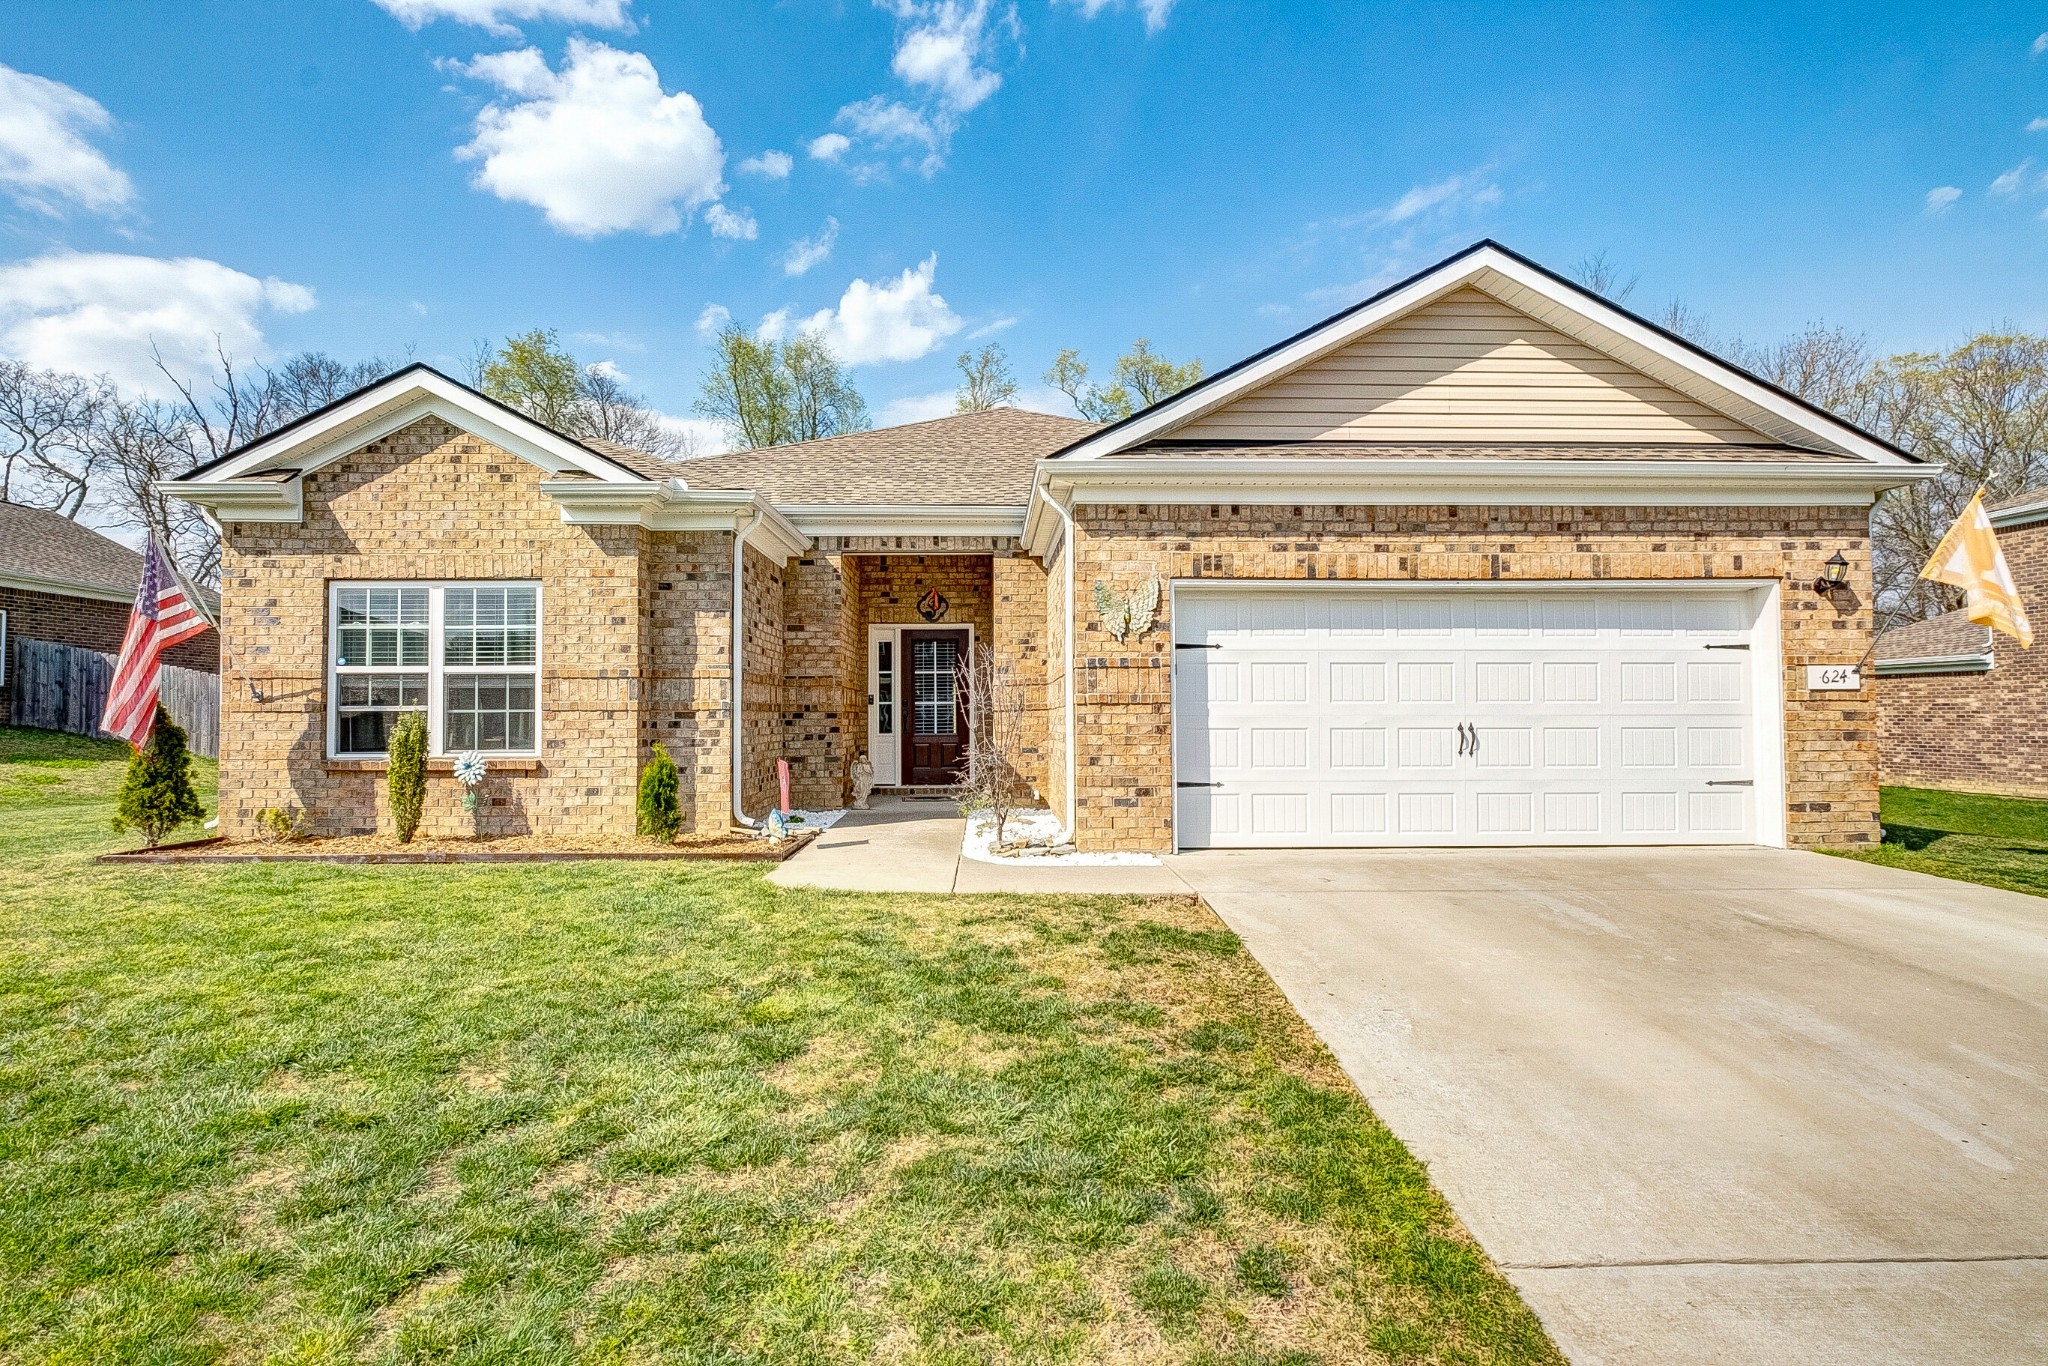 624 Fredericksburg Dr Property Photo - Gallatin, TN real estate listing